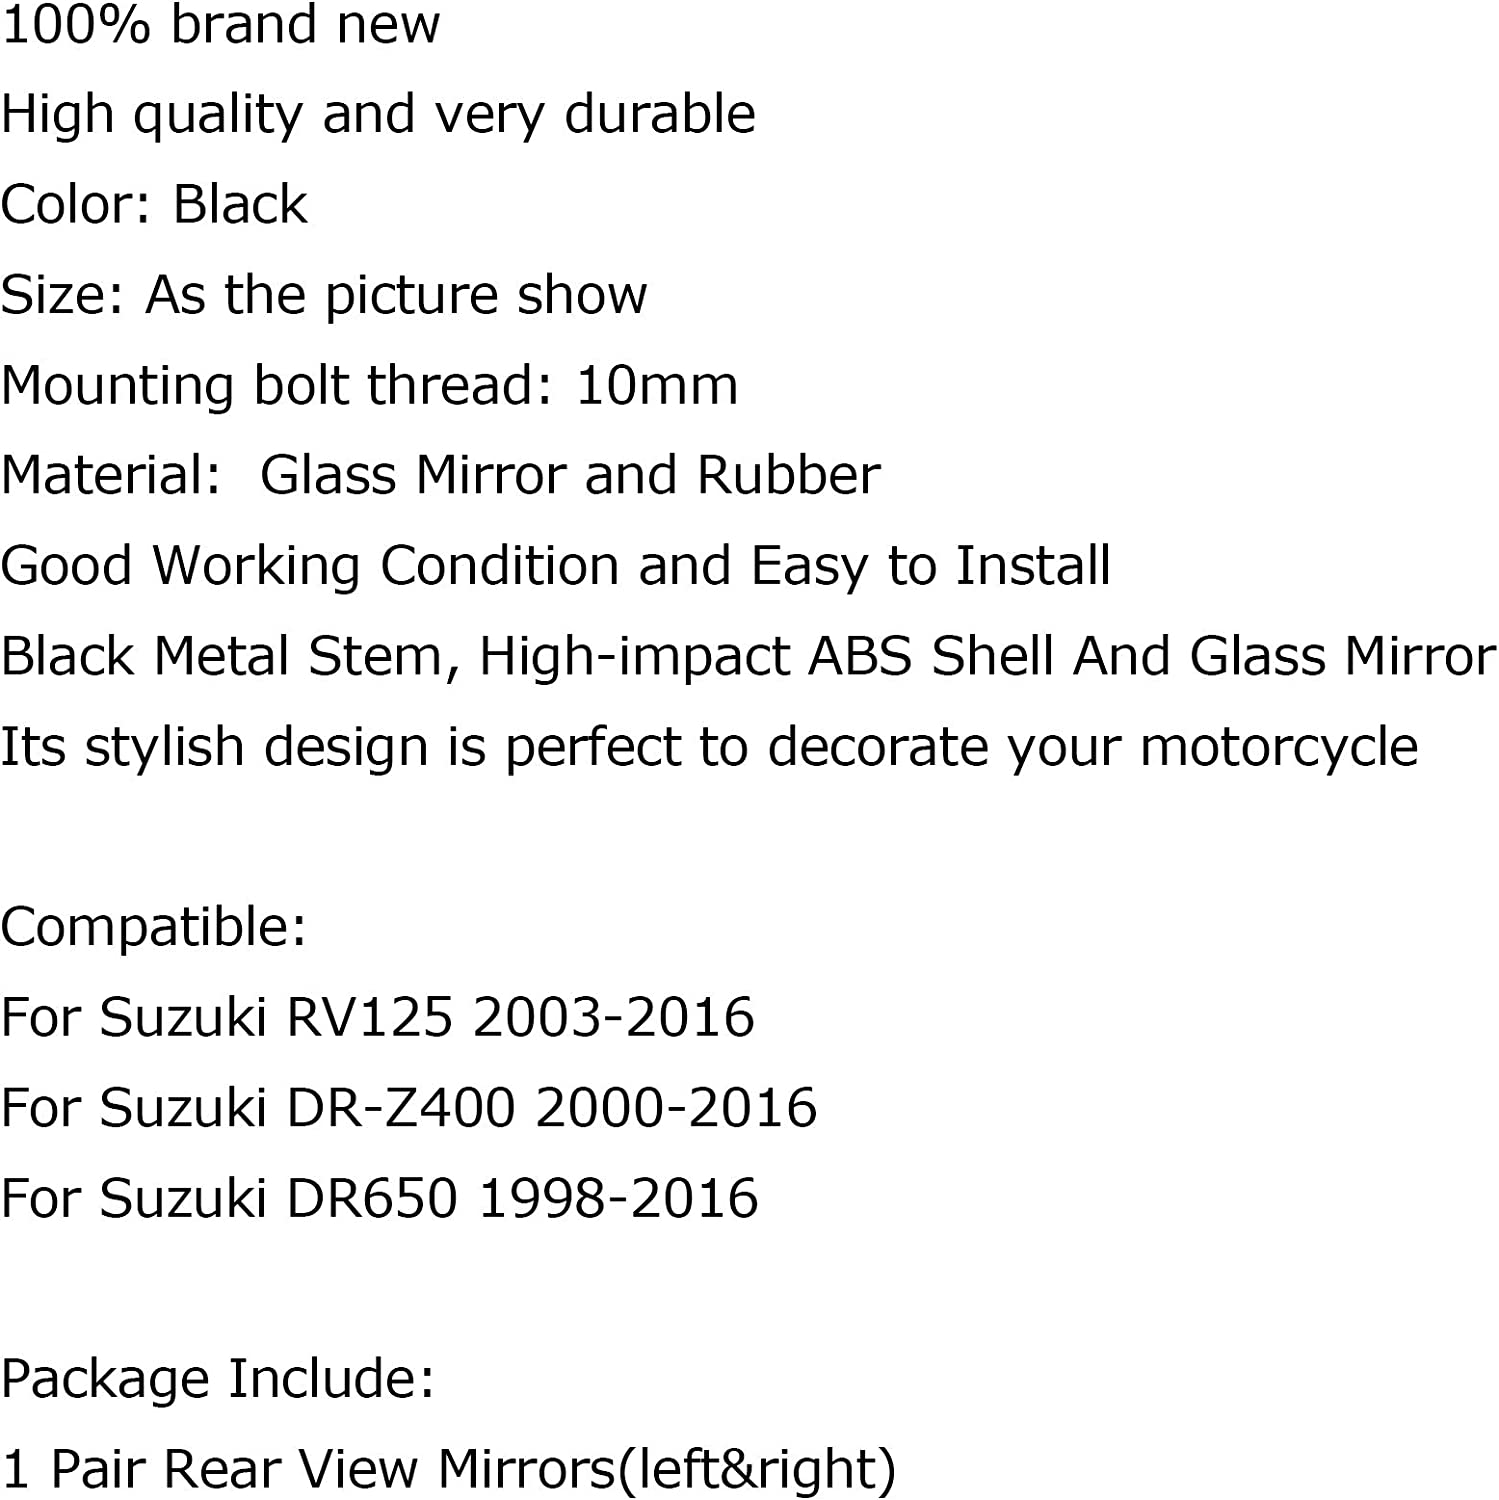 Areyourshop Motorcycle Rearview Mirrors For RV125 03-16 DR-Z400 2000-2016 DR650 98-16